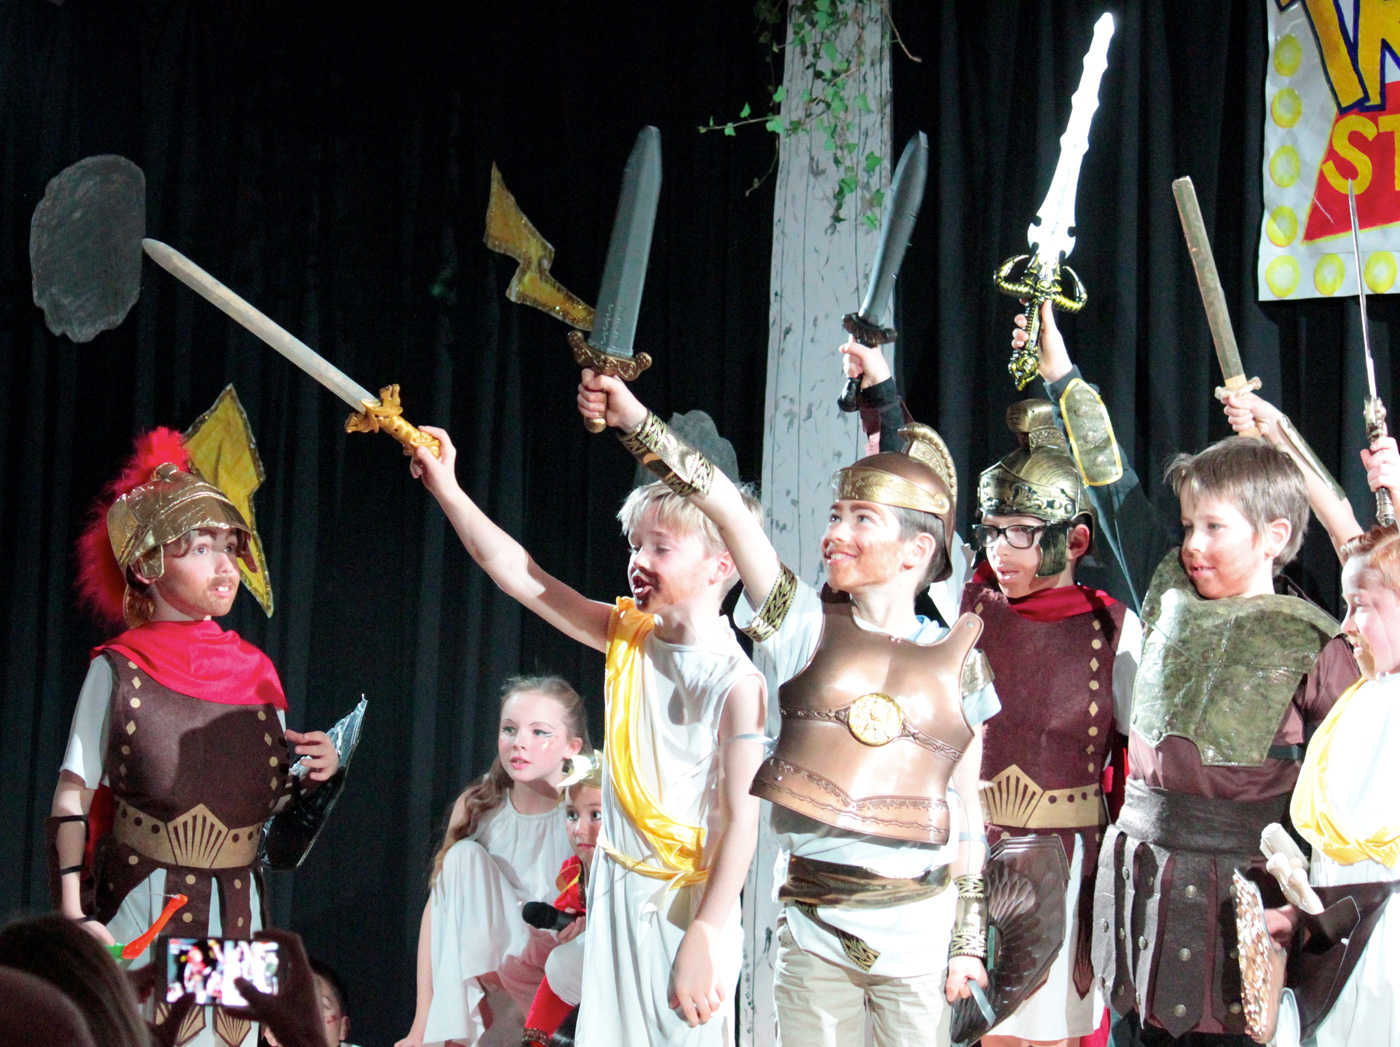 Year 4 perform Troy Story, based on Homer's epic tale